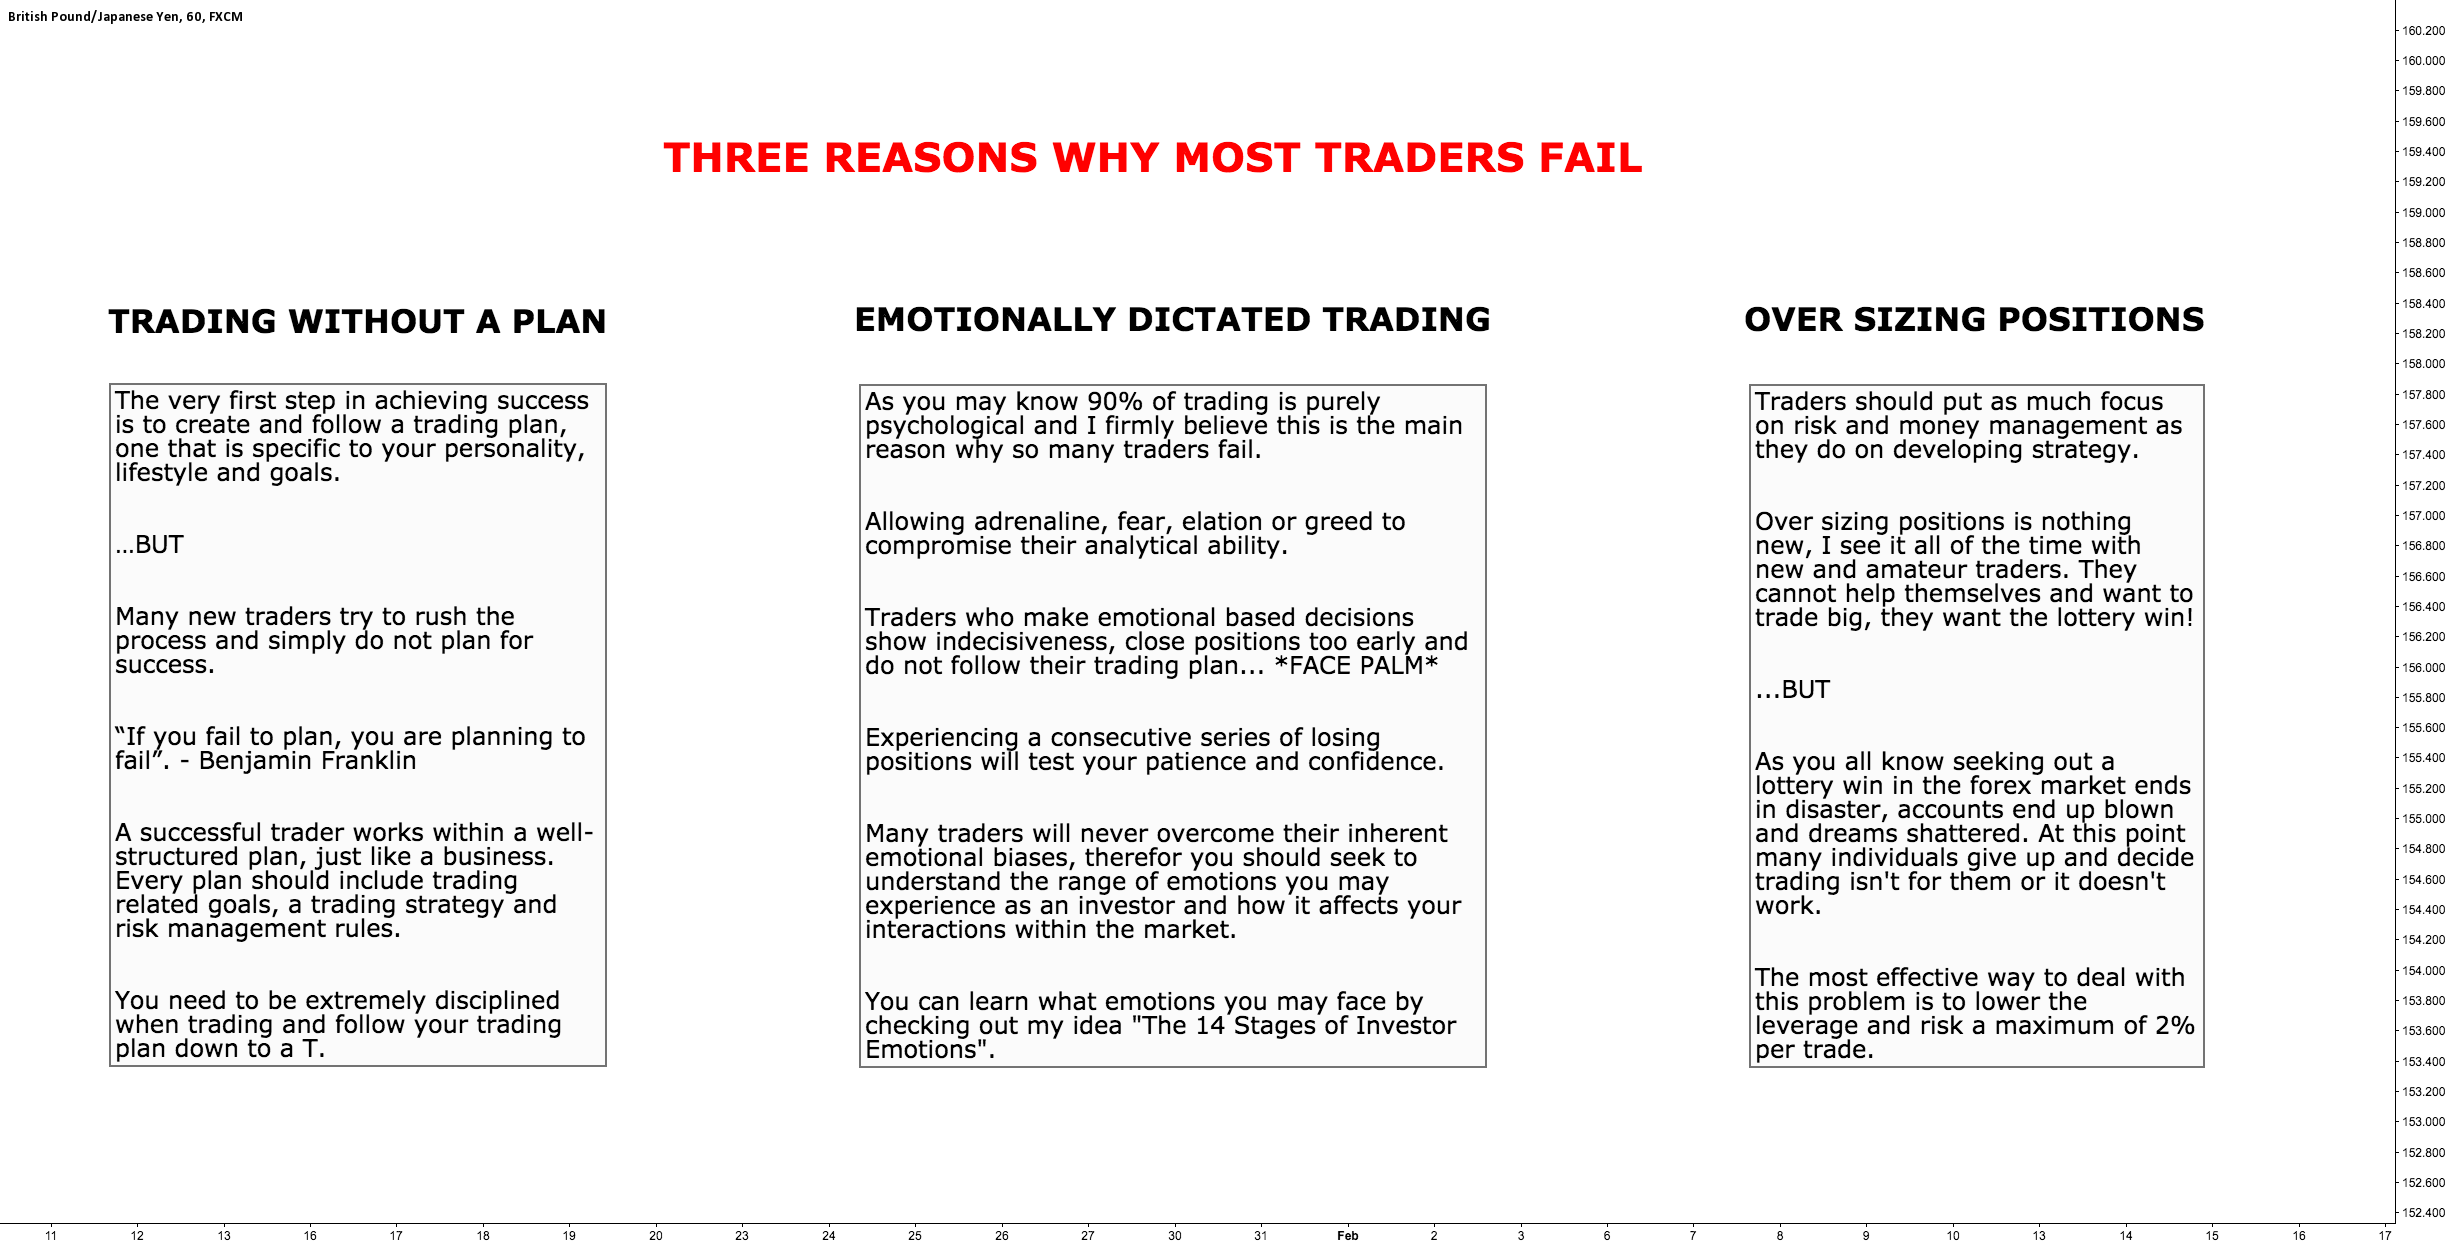 Three Reasons Why Most Traders Fail